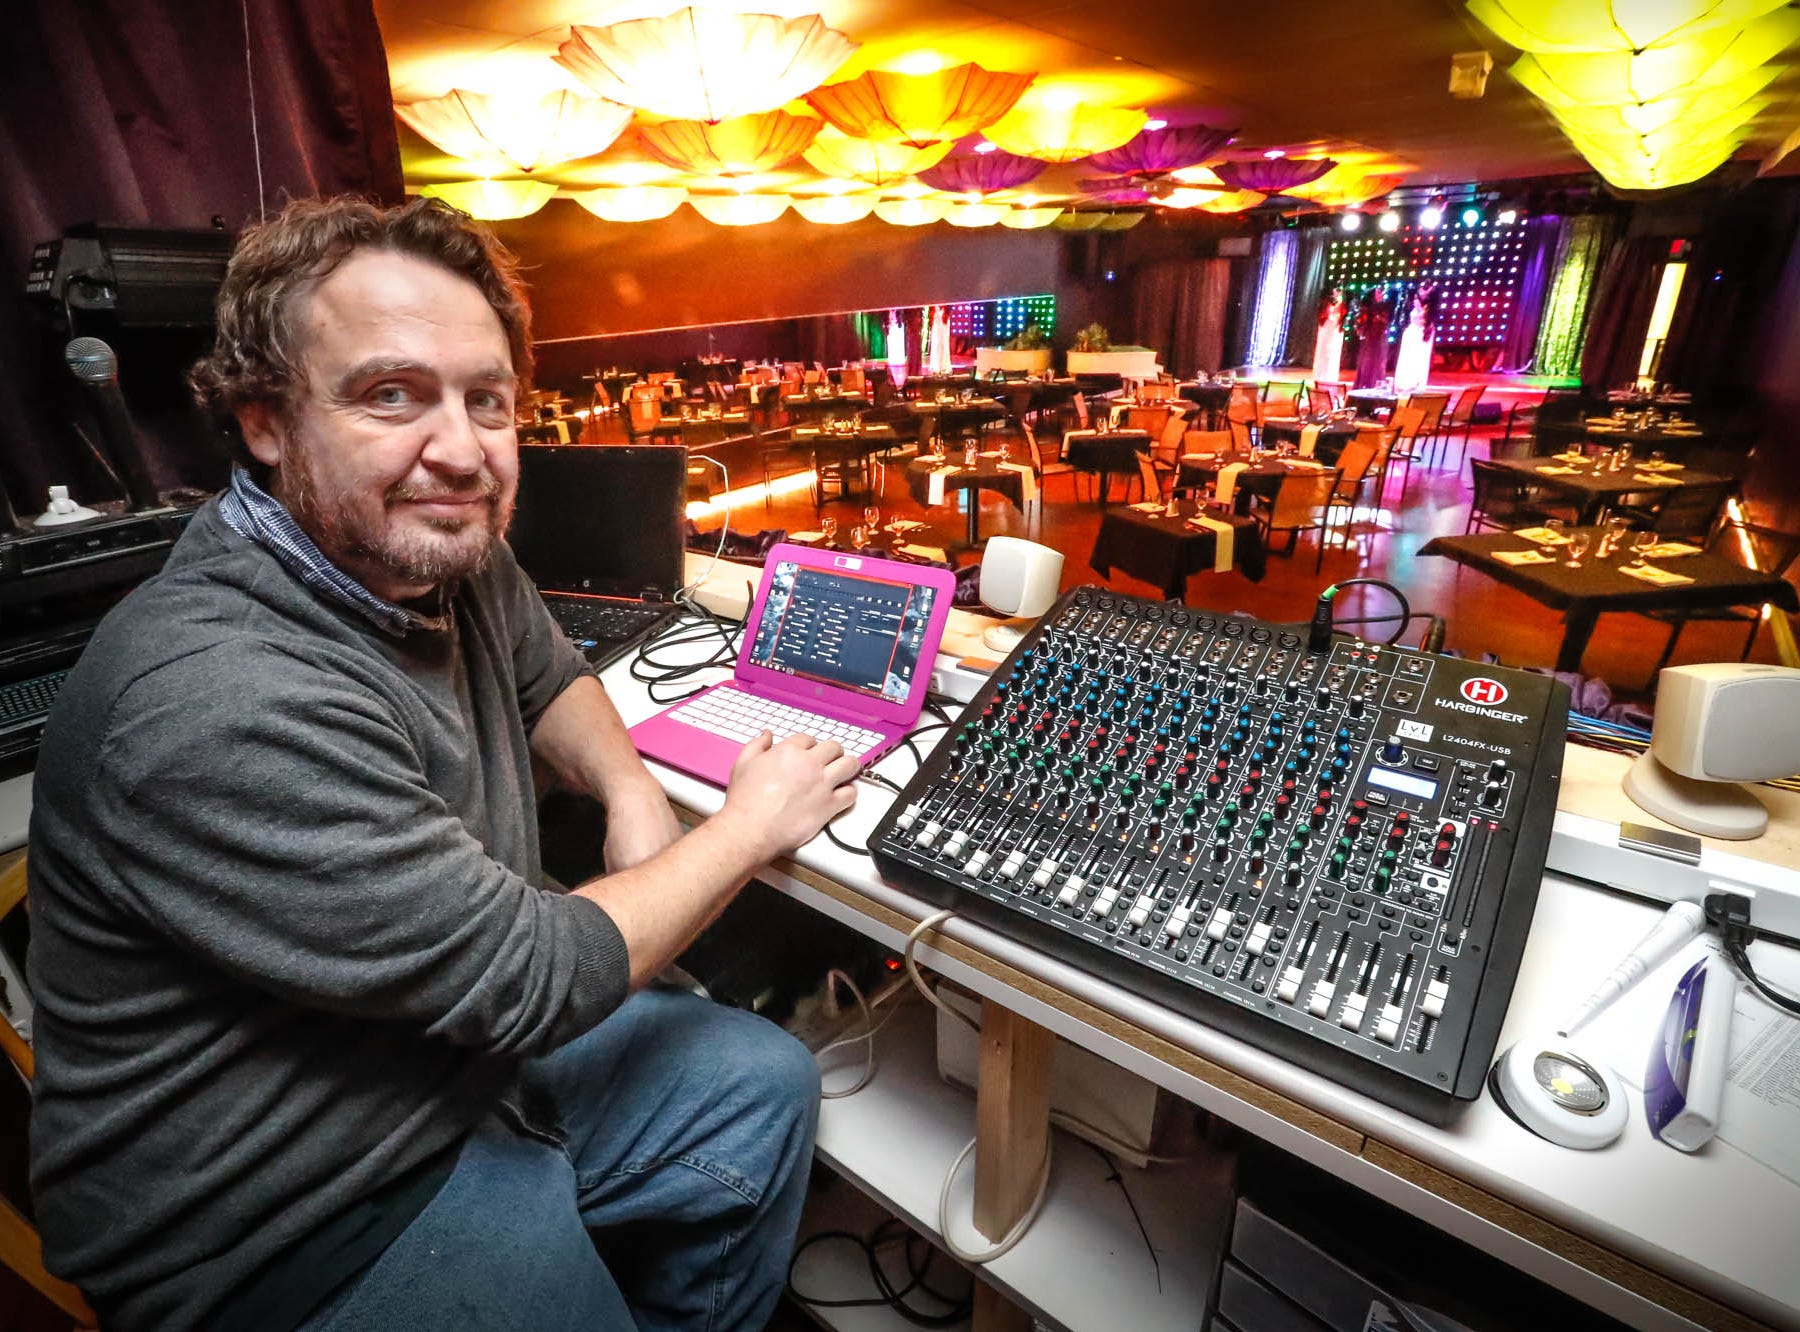 Director of Technical Services, Chris Plunkett sits at the helm in the sound and lighting booth at Stage To Screen's Catered Cabaret Theatre, 350 S. Madison Ave., Greenwood Ind. on Thursday, Jan. 17, 2019. The theatre was originally named Stage To Screen Studios, but has since evolved.